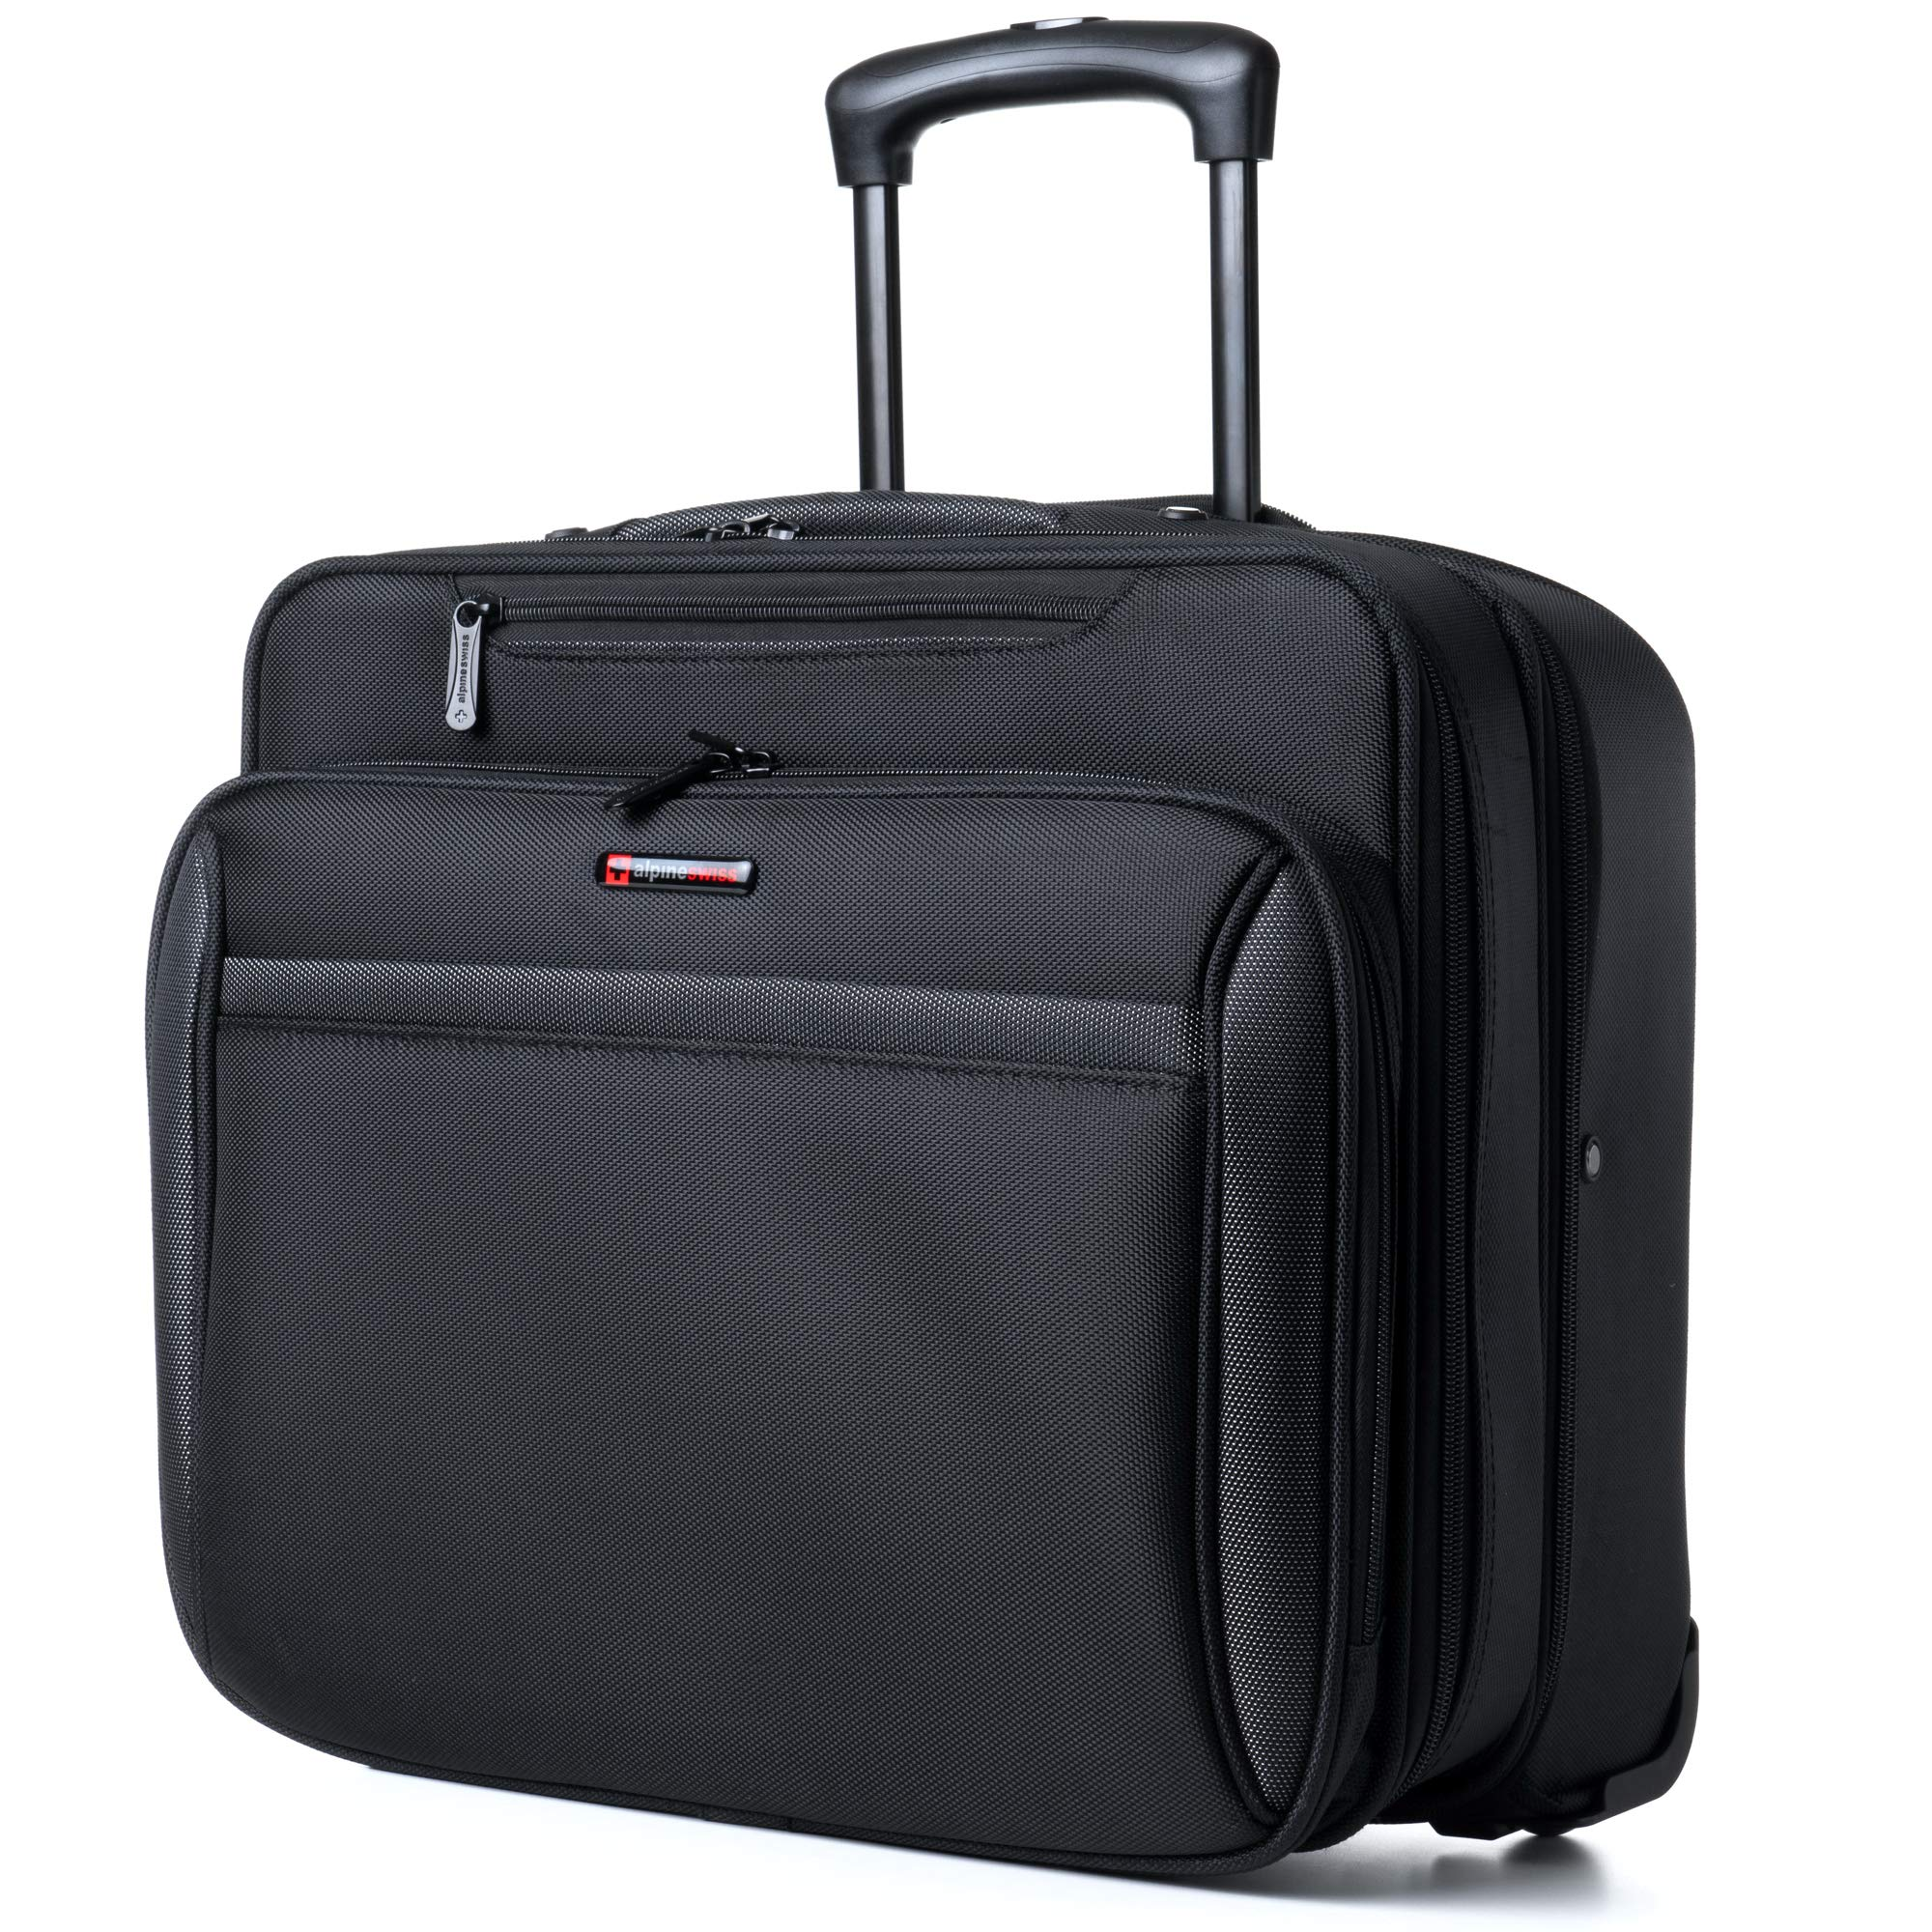 Alpine Swiss Rolling Laptop Briefcase Wheeled Overnight Carry on Bag Up to 15.6 Inches Notebook - Carries Legal Size Files by alpine swiss (Image #2)